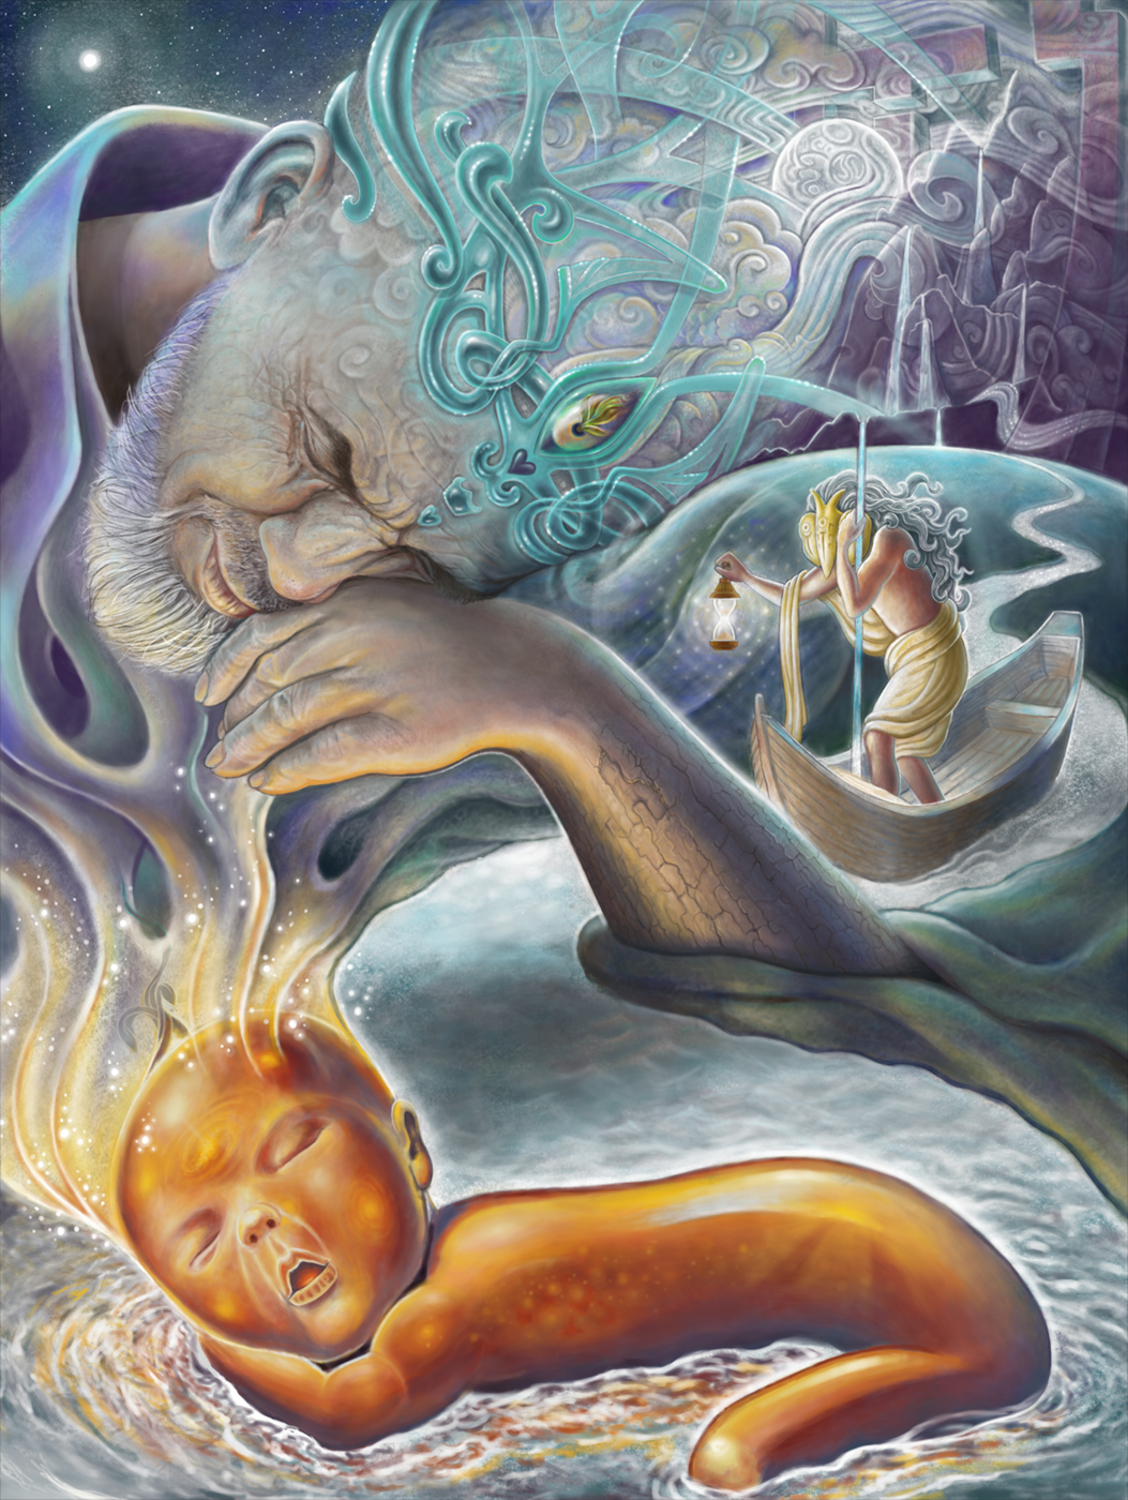 The Dreaming Artwork by Joshua Levin